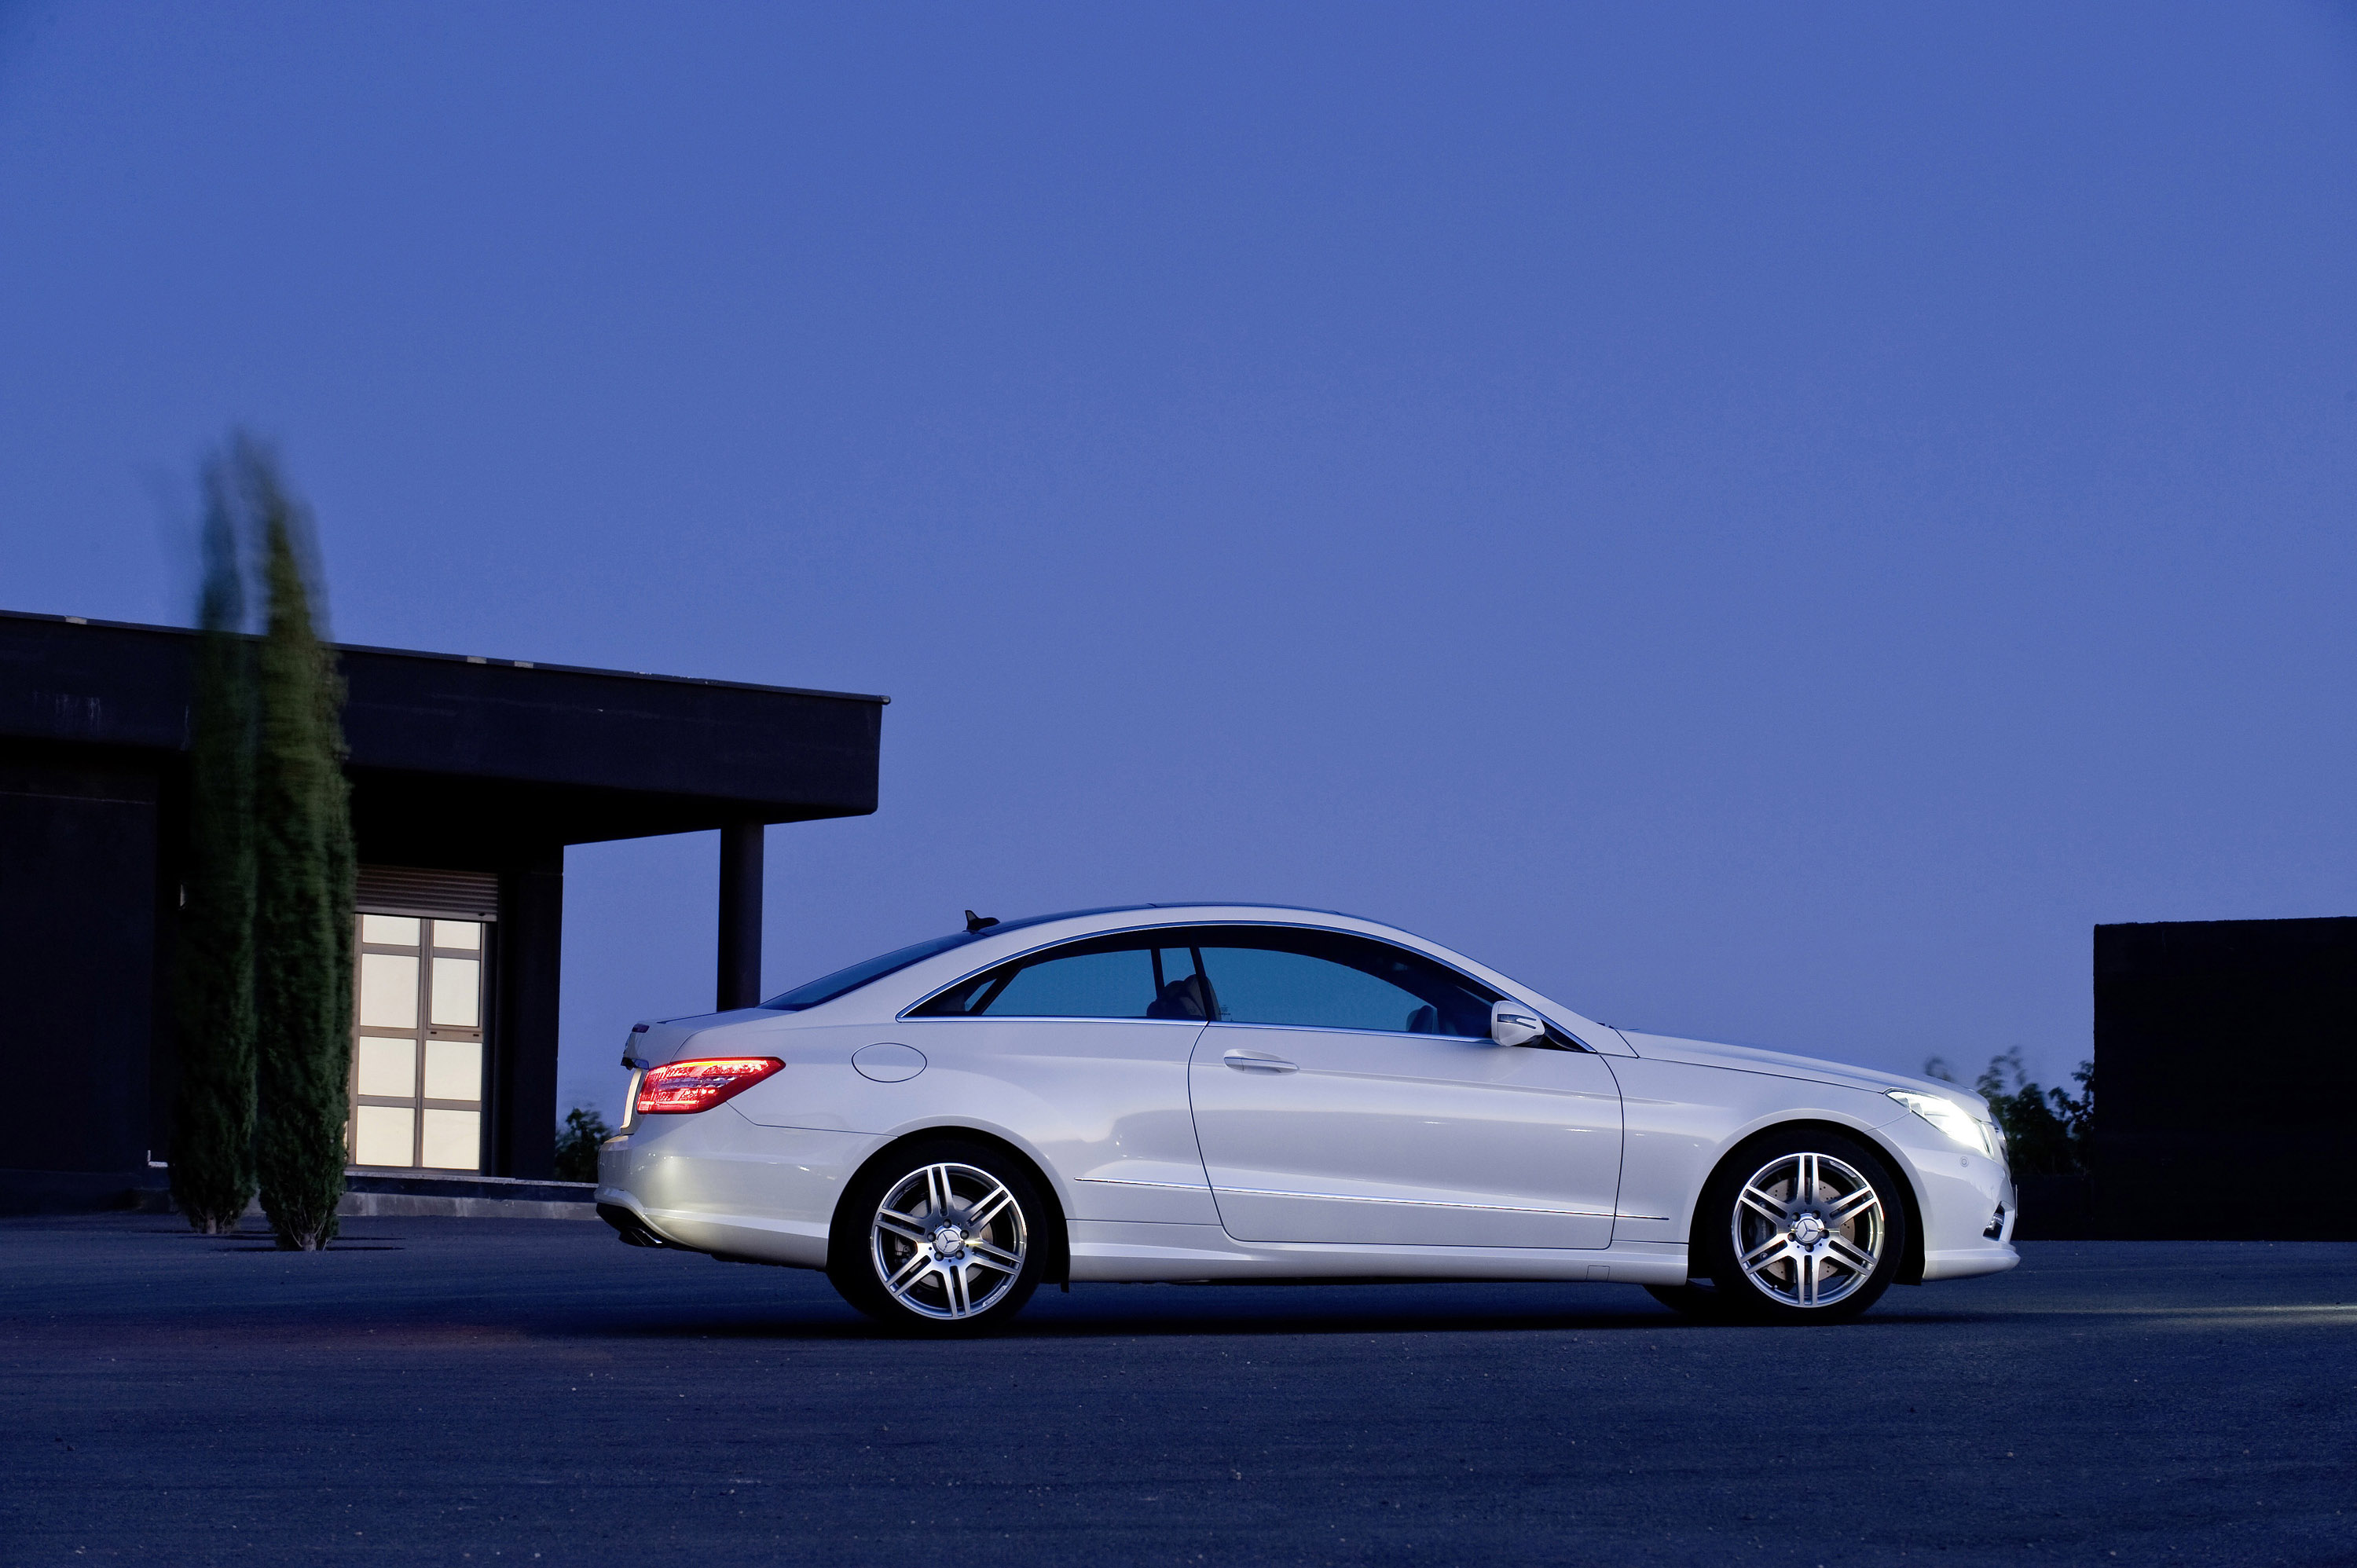 Mercedes benz e500 coupe with amg sports pack picture 13069 for Mercedes benz e500 coupe